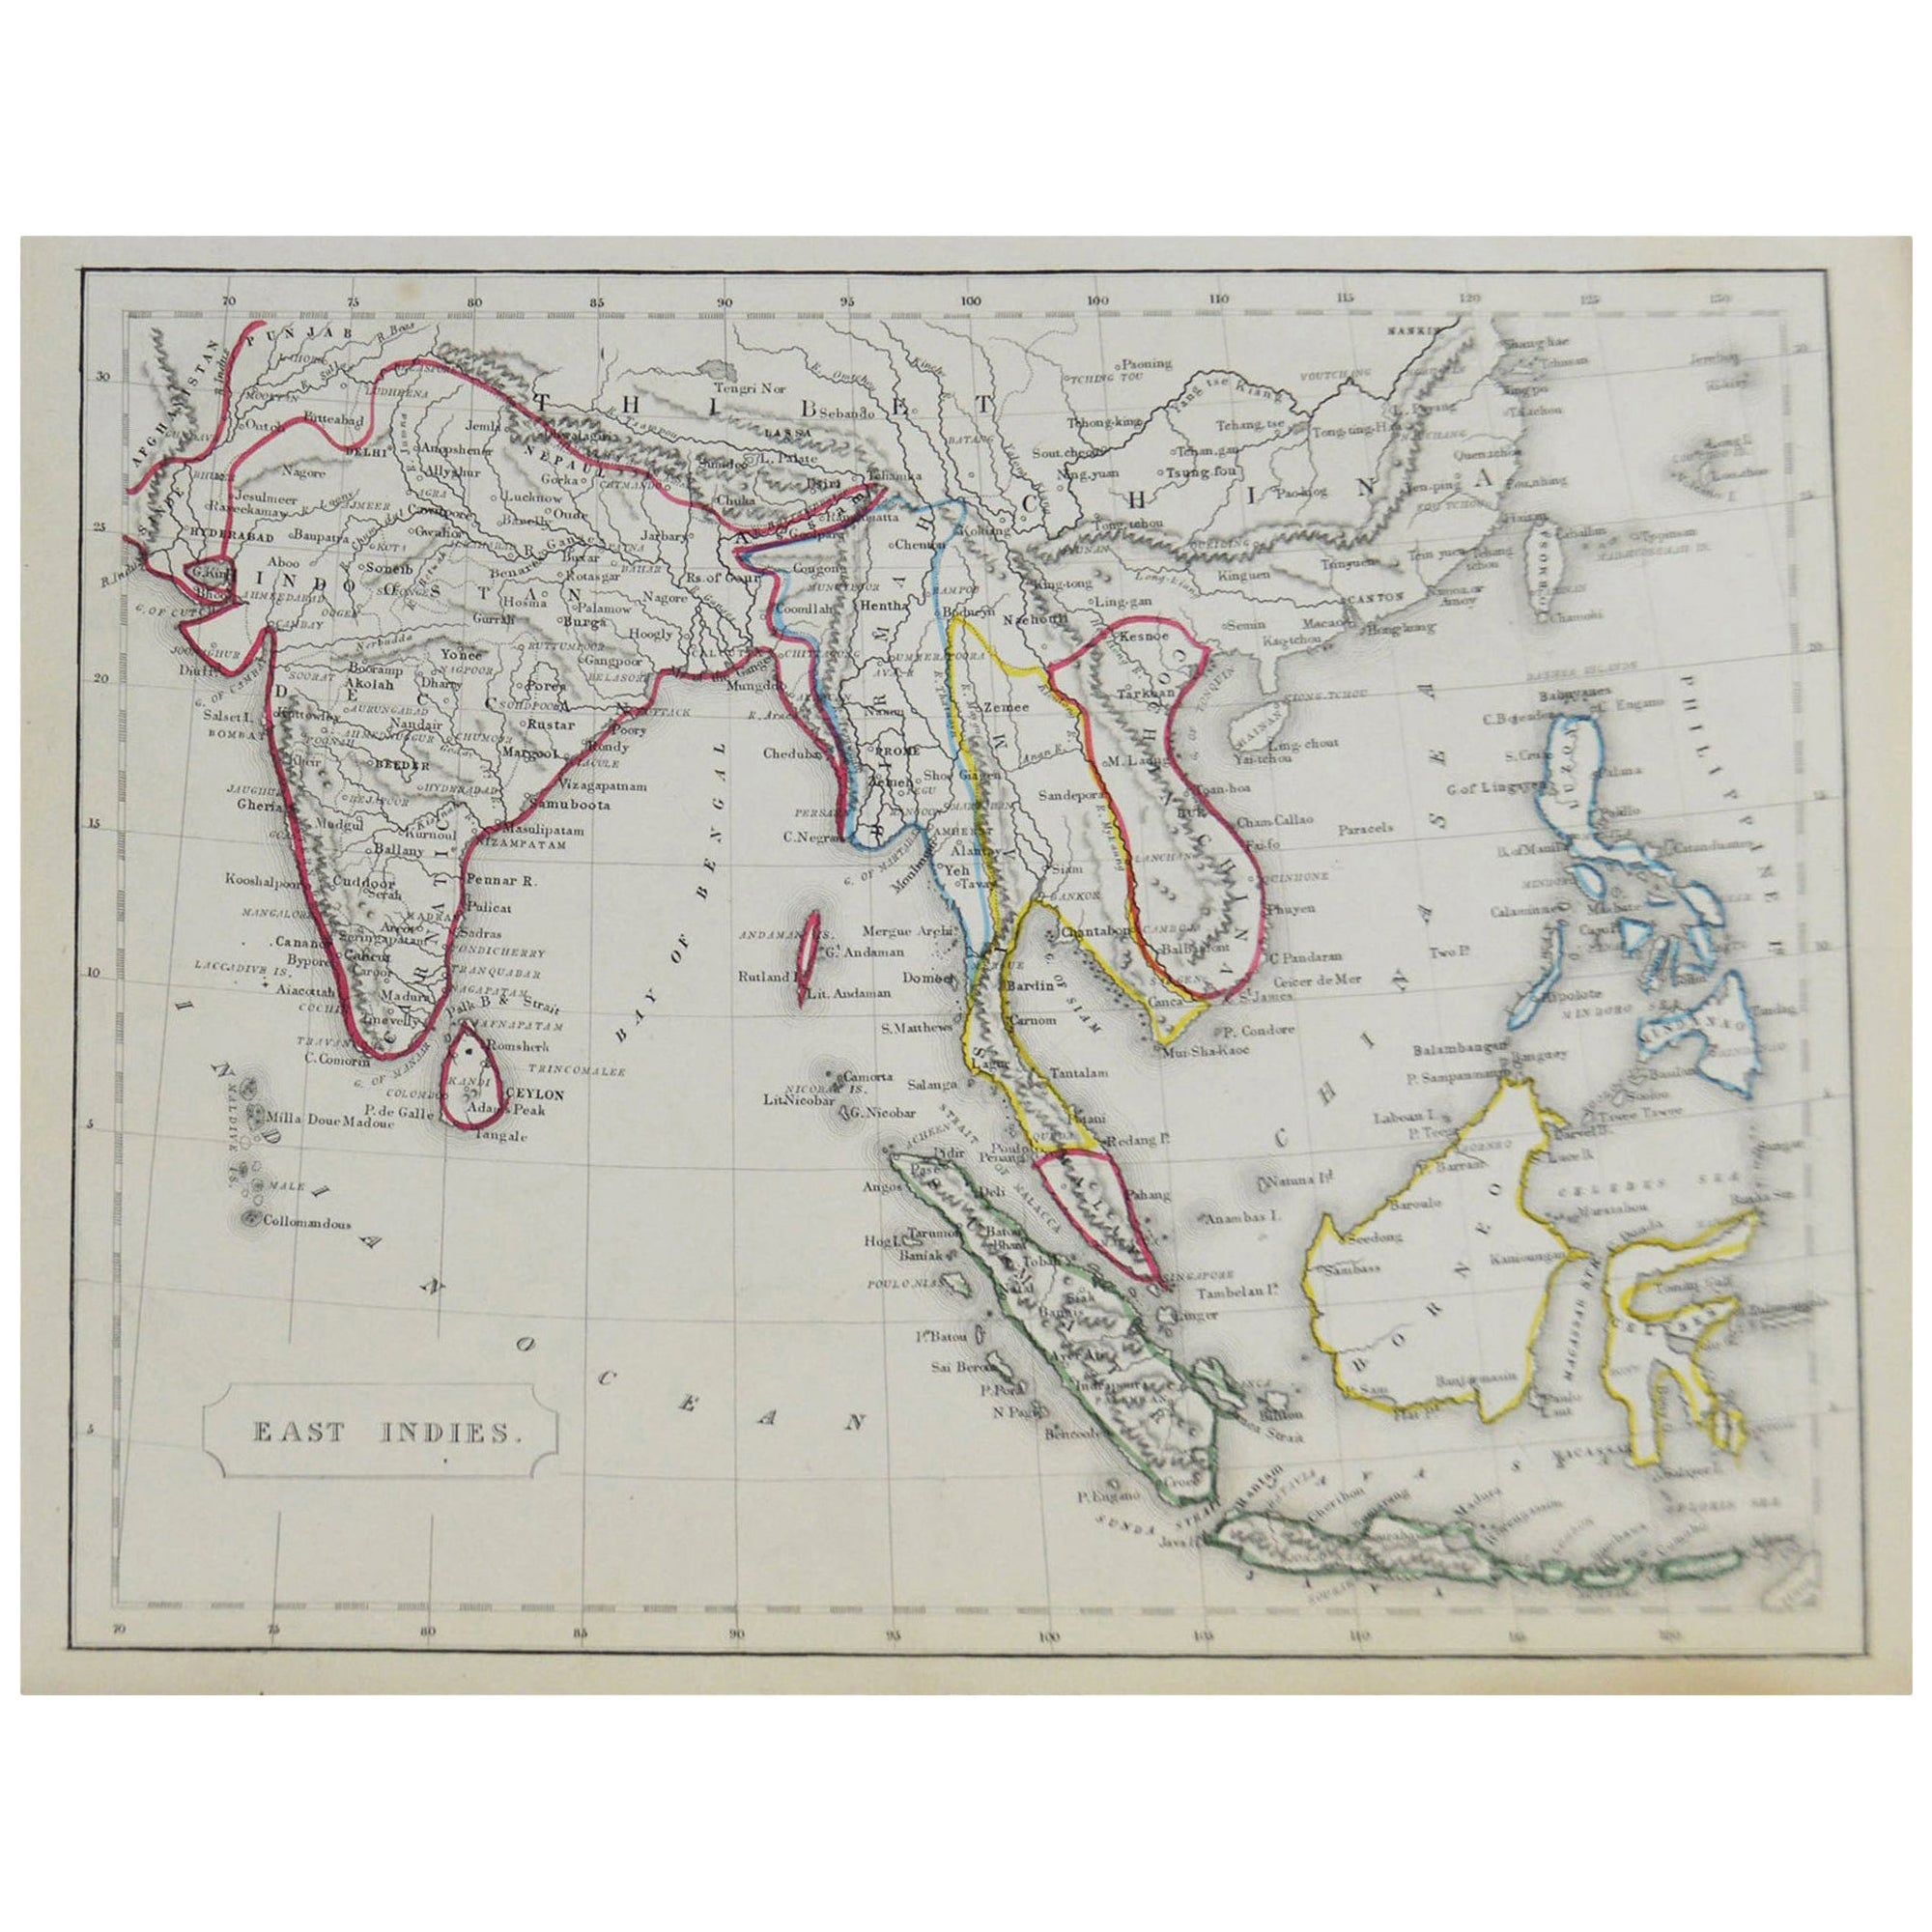 Original Antique Map of South East Asia by Becker, circa 1840